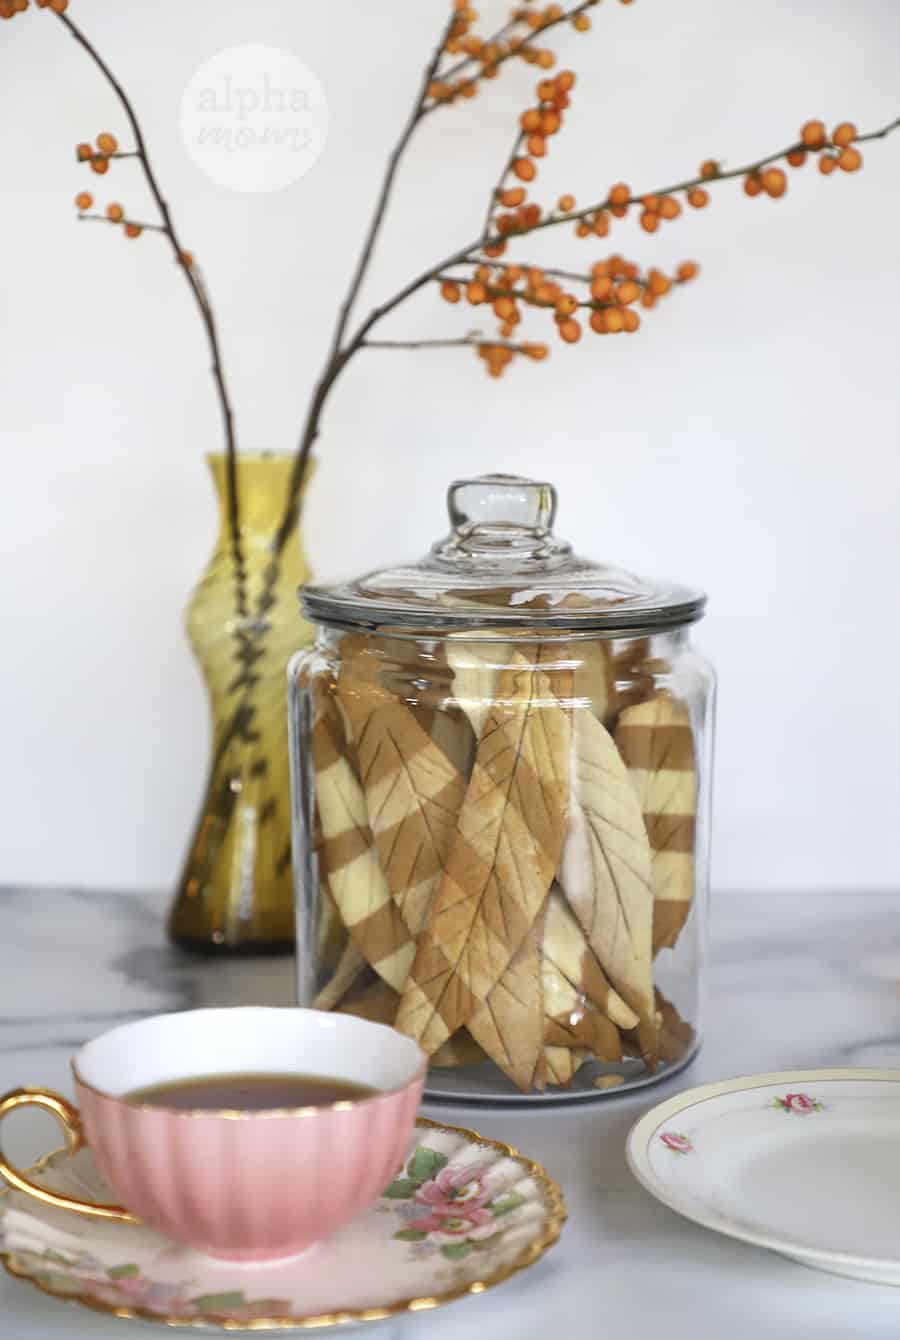 feather-shaped striped sugar cookies stored in a large Anchor Hocking jar with tea cup in foreground